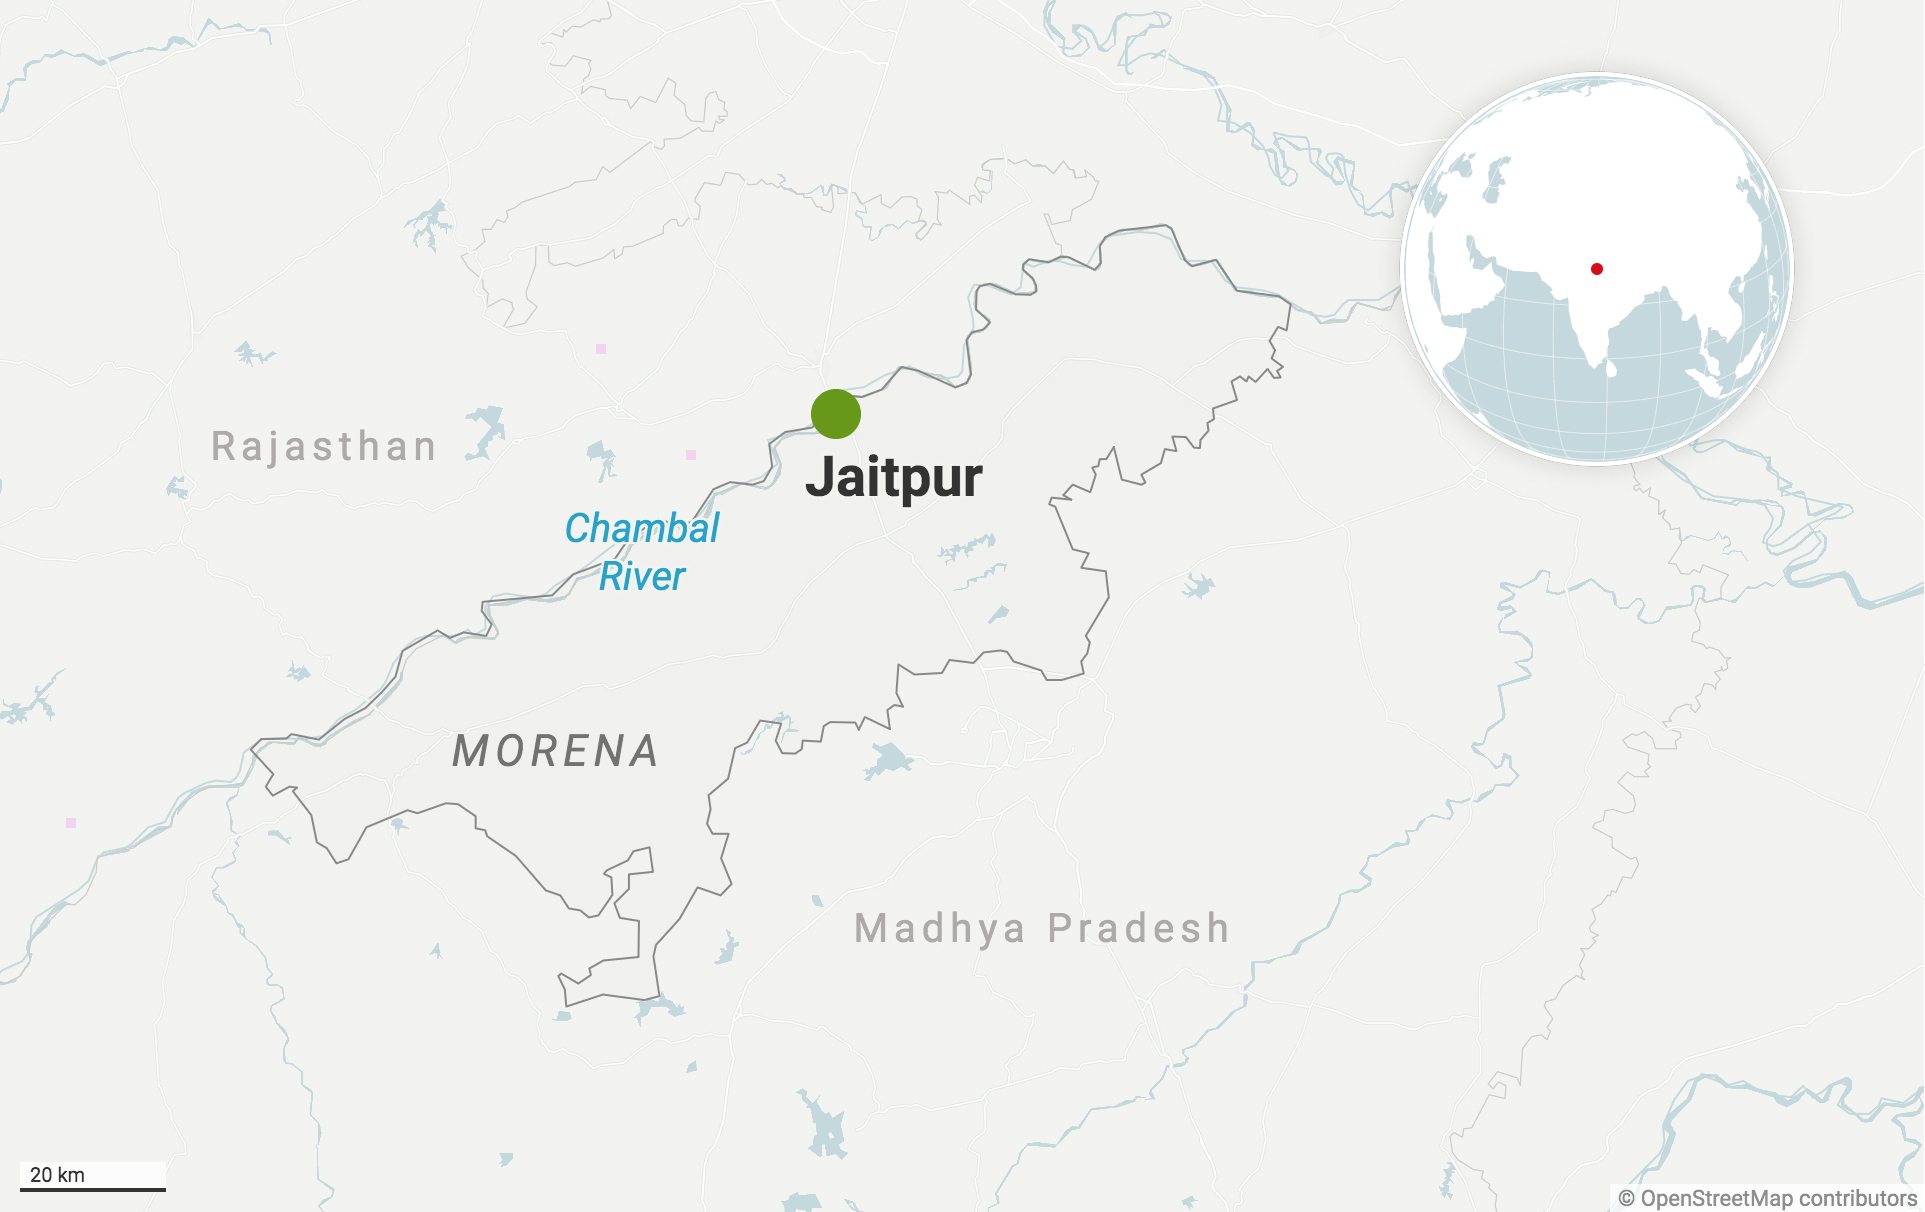 Jaitpur village in Morena district of Madhya Pradesh along the river Chambal. Map from Datawrapper.